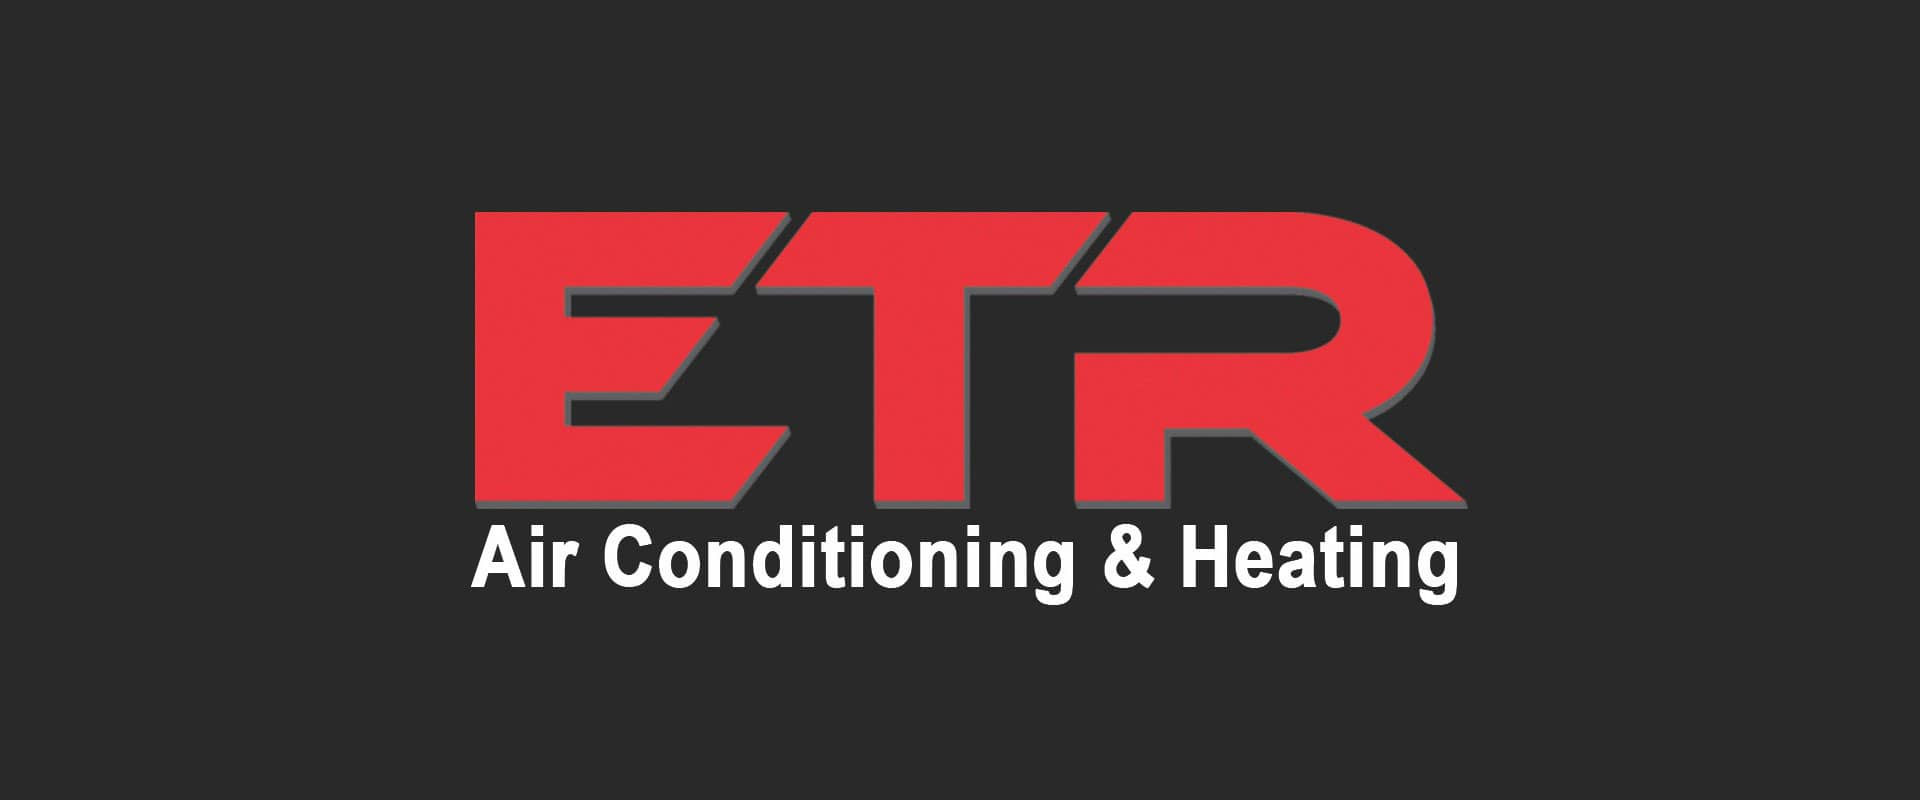 ETR from Longview Texas is Air Conditioning and Heating company